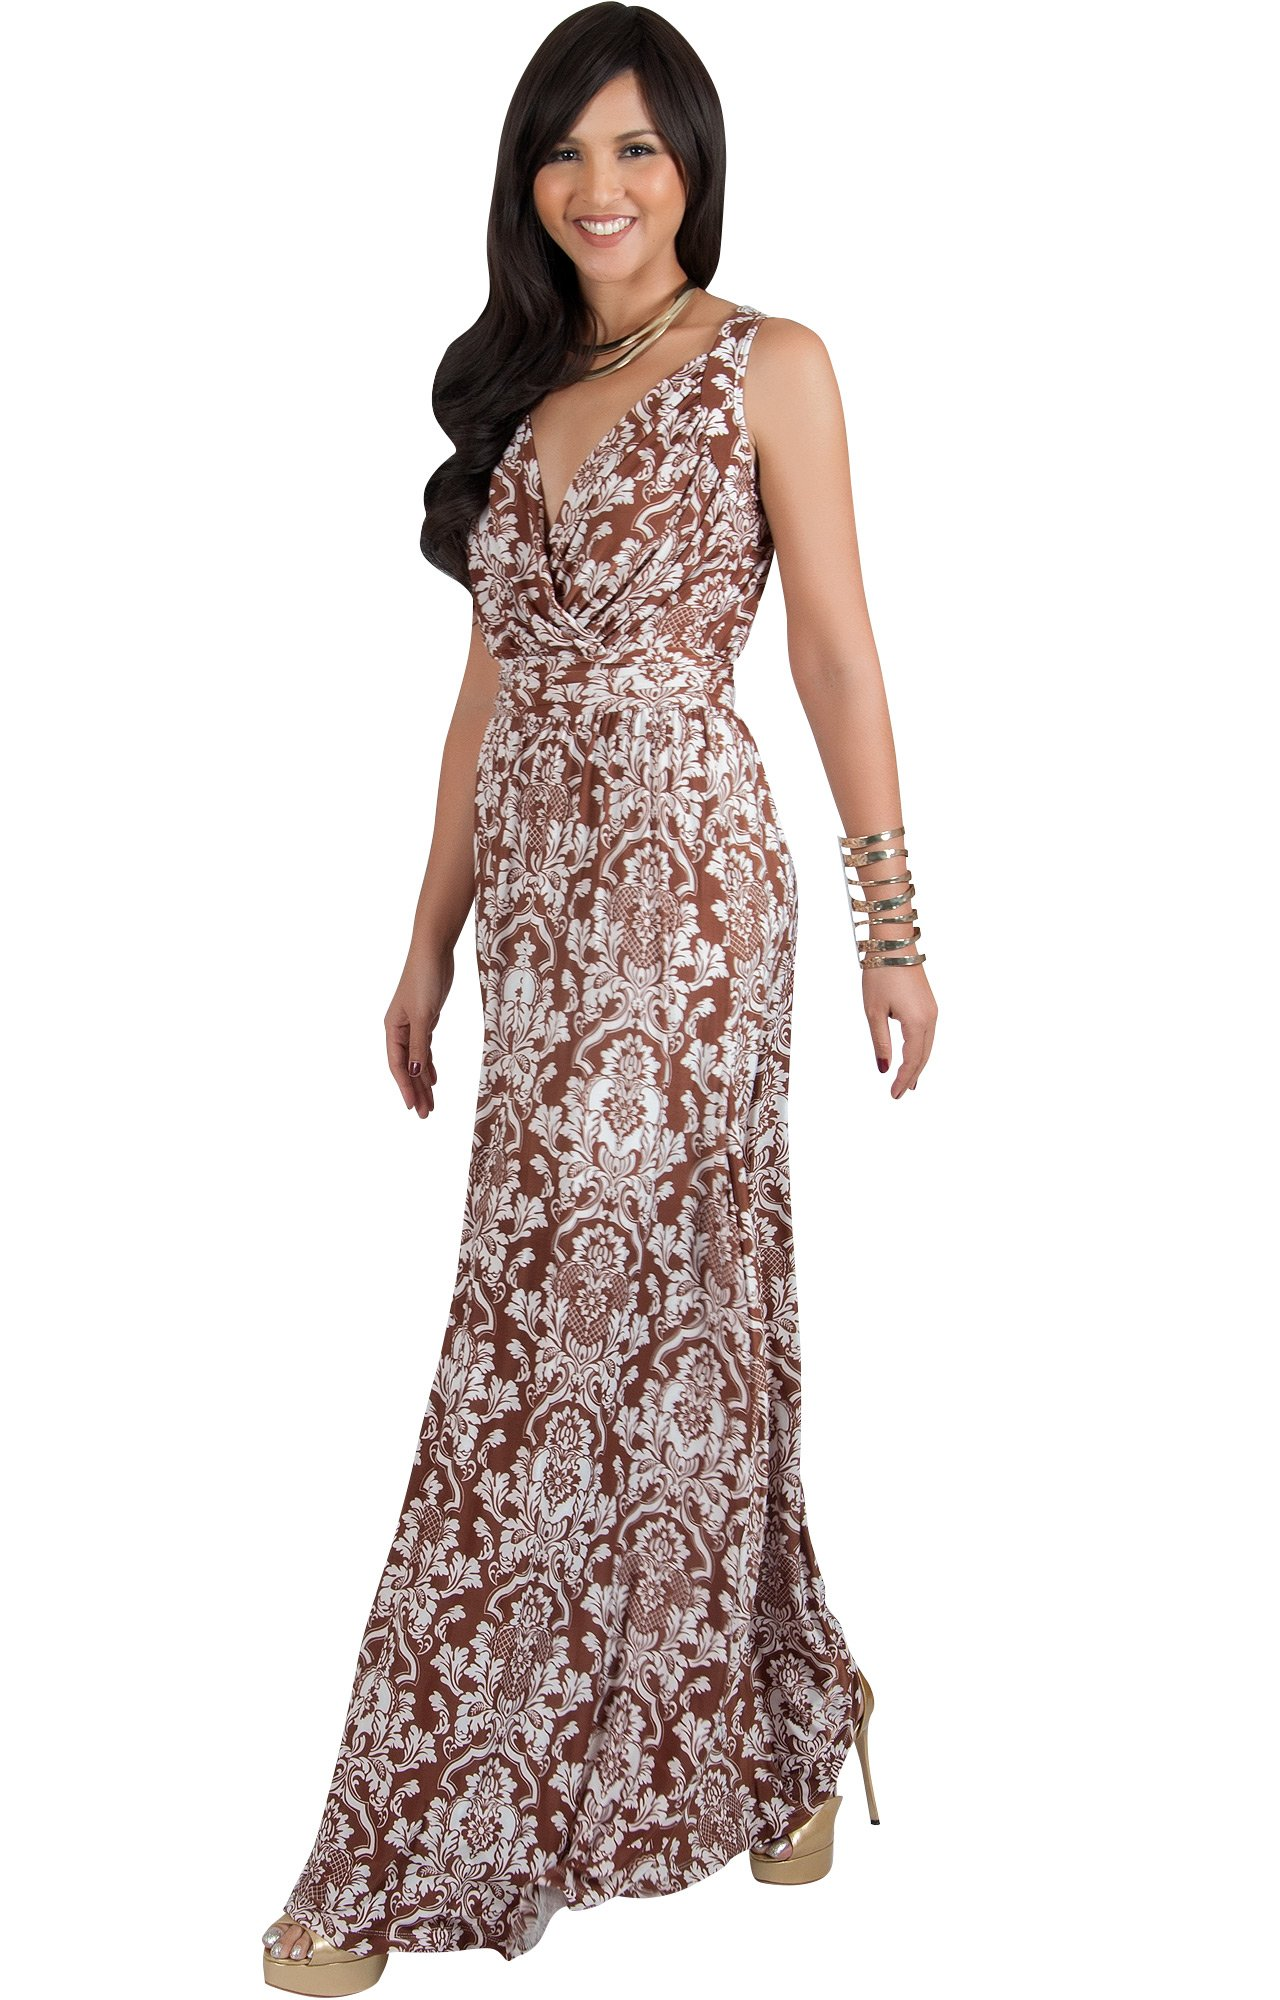 ff5ad02ce954 ... Sun Vintage Casual Floral Print Work Party Jersey Sexy Gown Gowns Maxi  Dress Dresses